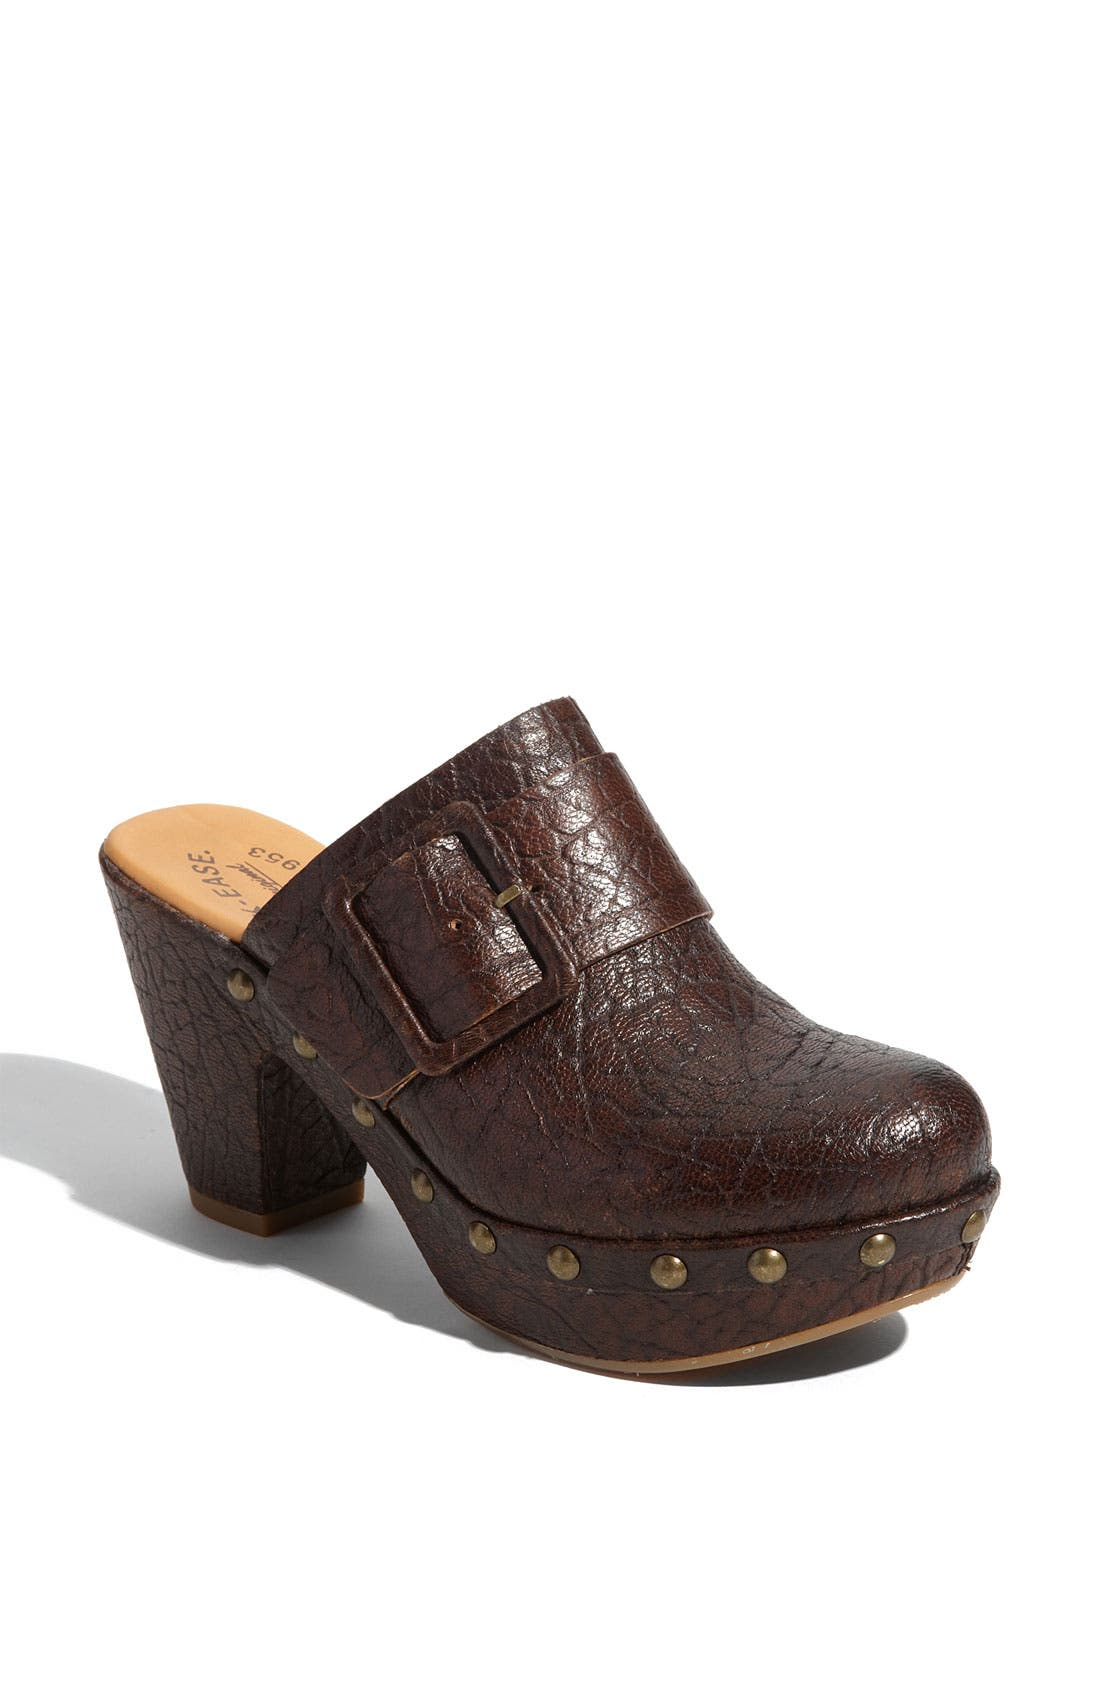 Main Image - Kork-Ease 'Madison' Mule